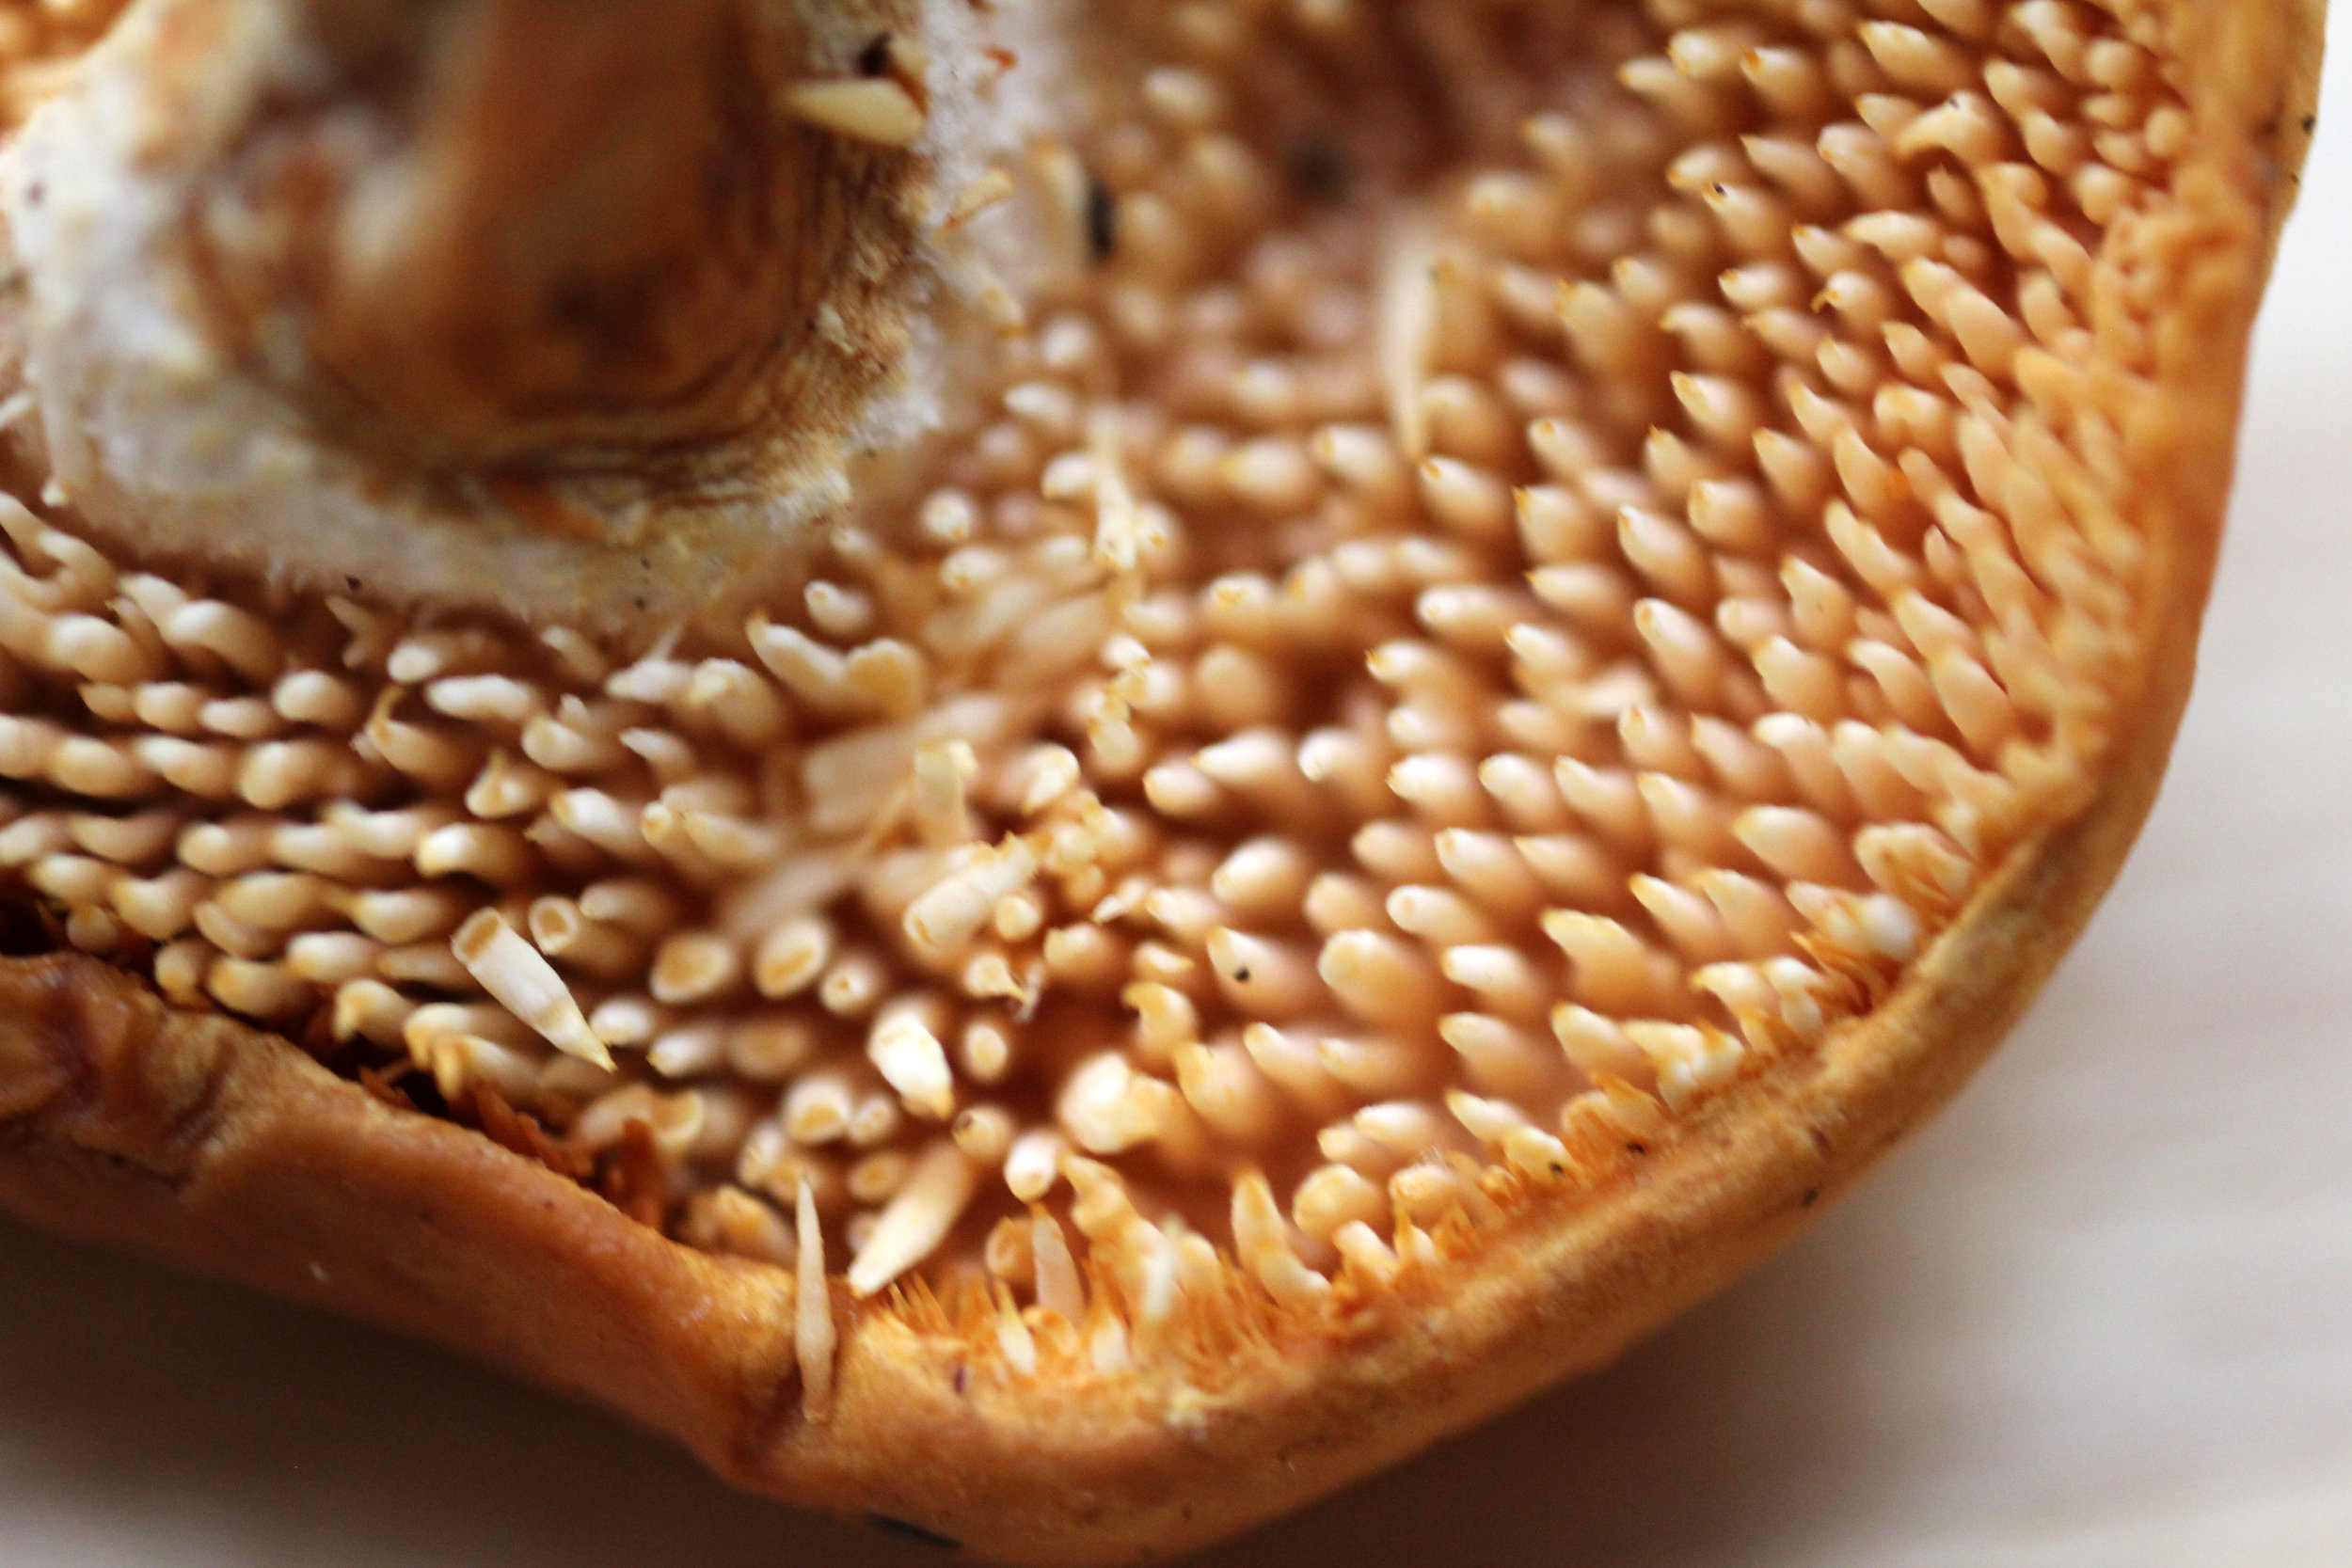 By Quinn Dombrowski from Berkeley, USA - Hedgehog mushroom, CC BY-SA 2.0,